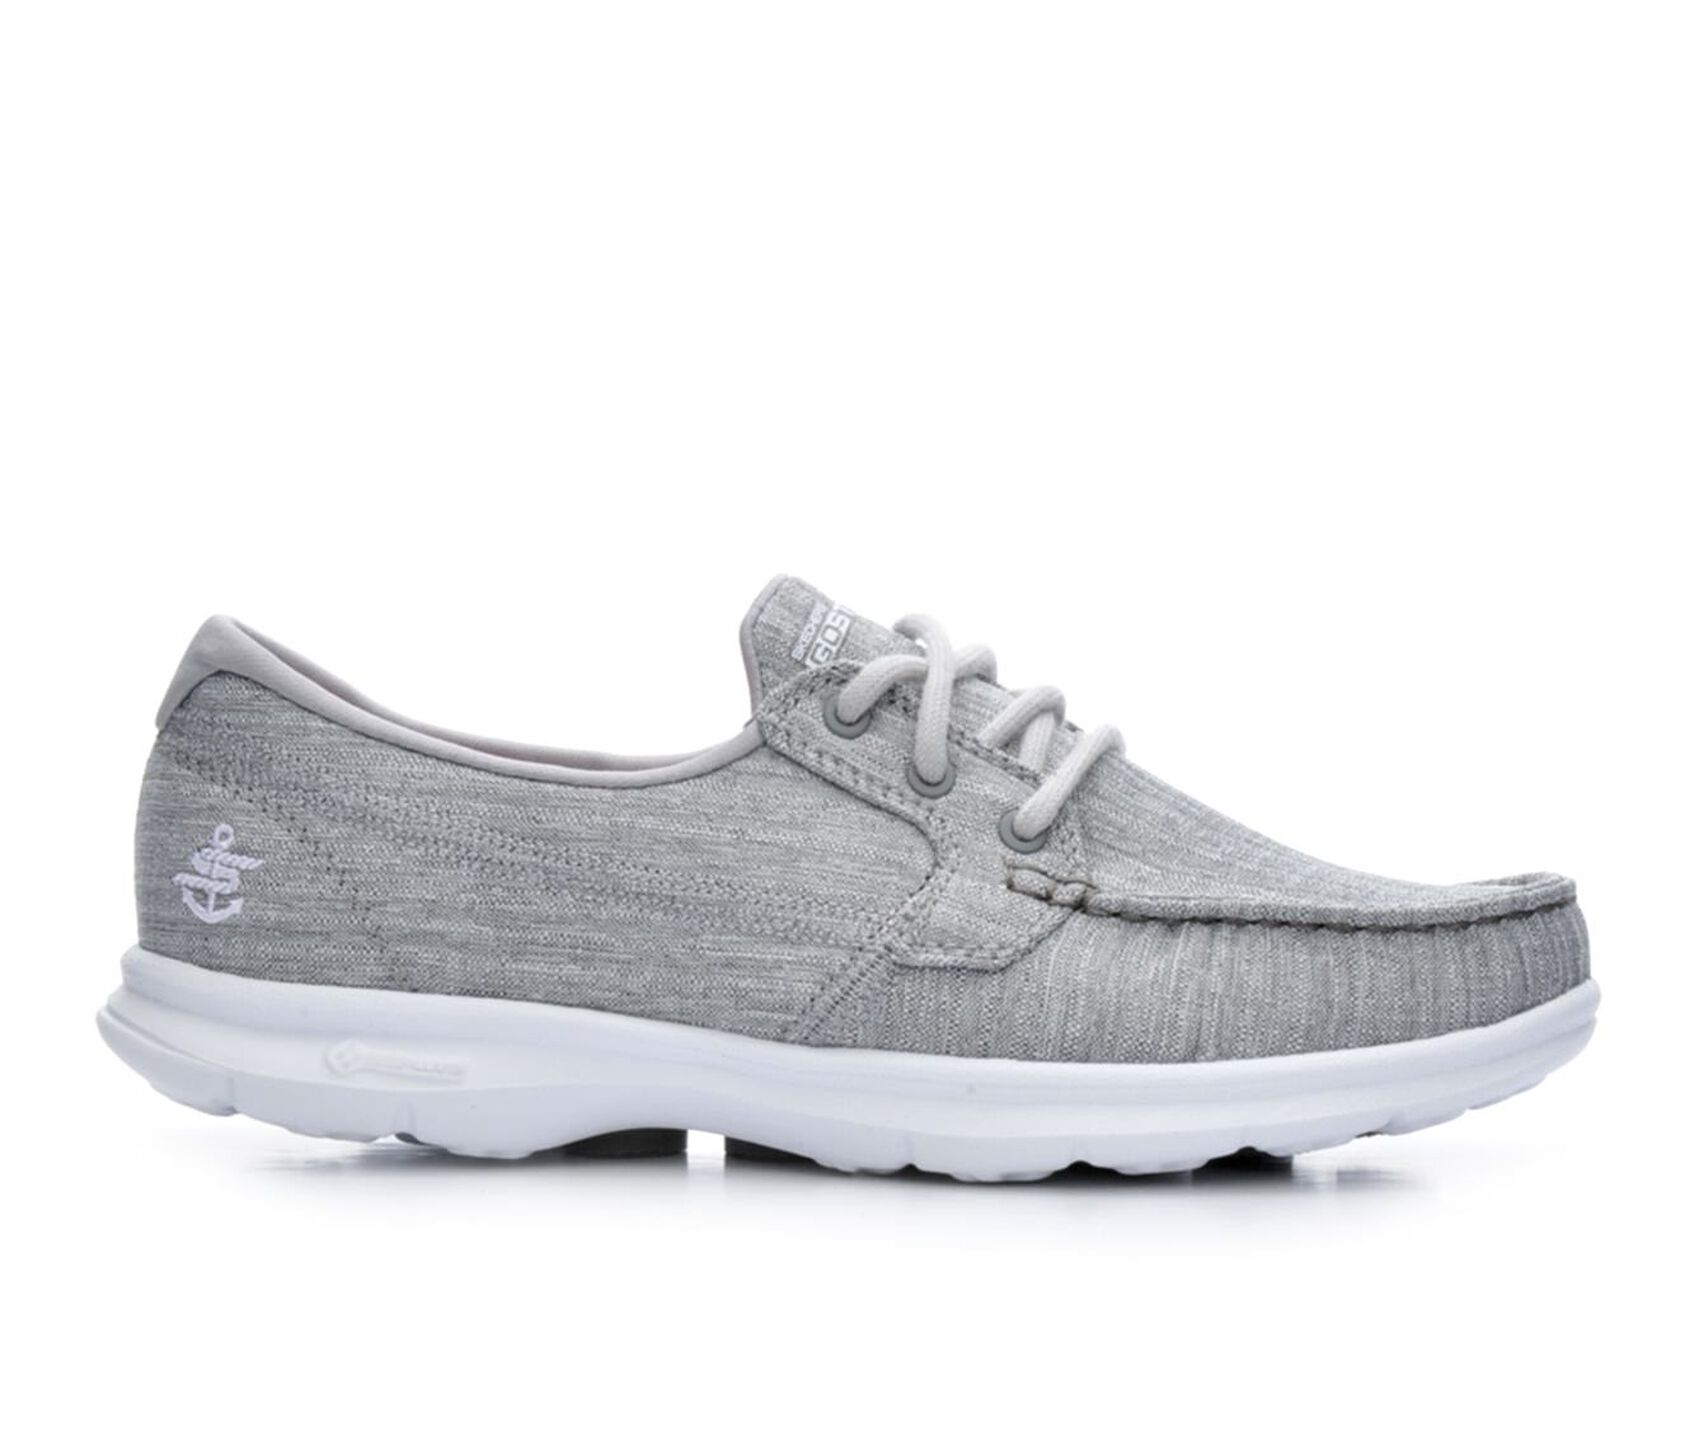 Kohl's is offering a selection of Fila athletic shoes for men and women starting at $, but then with coupon code VETSDAY, you'll save $10 off $25 — and then .